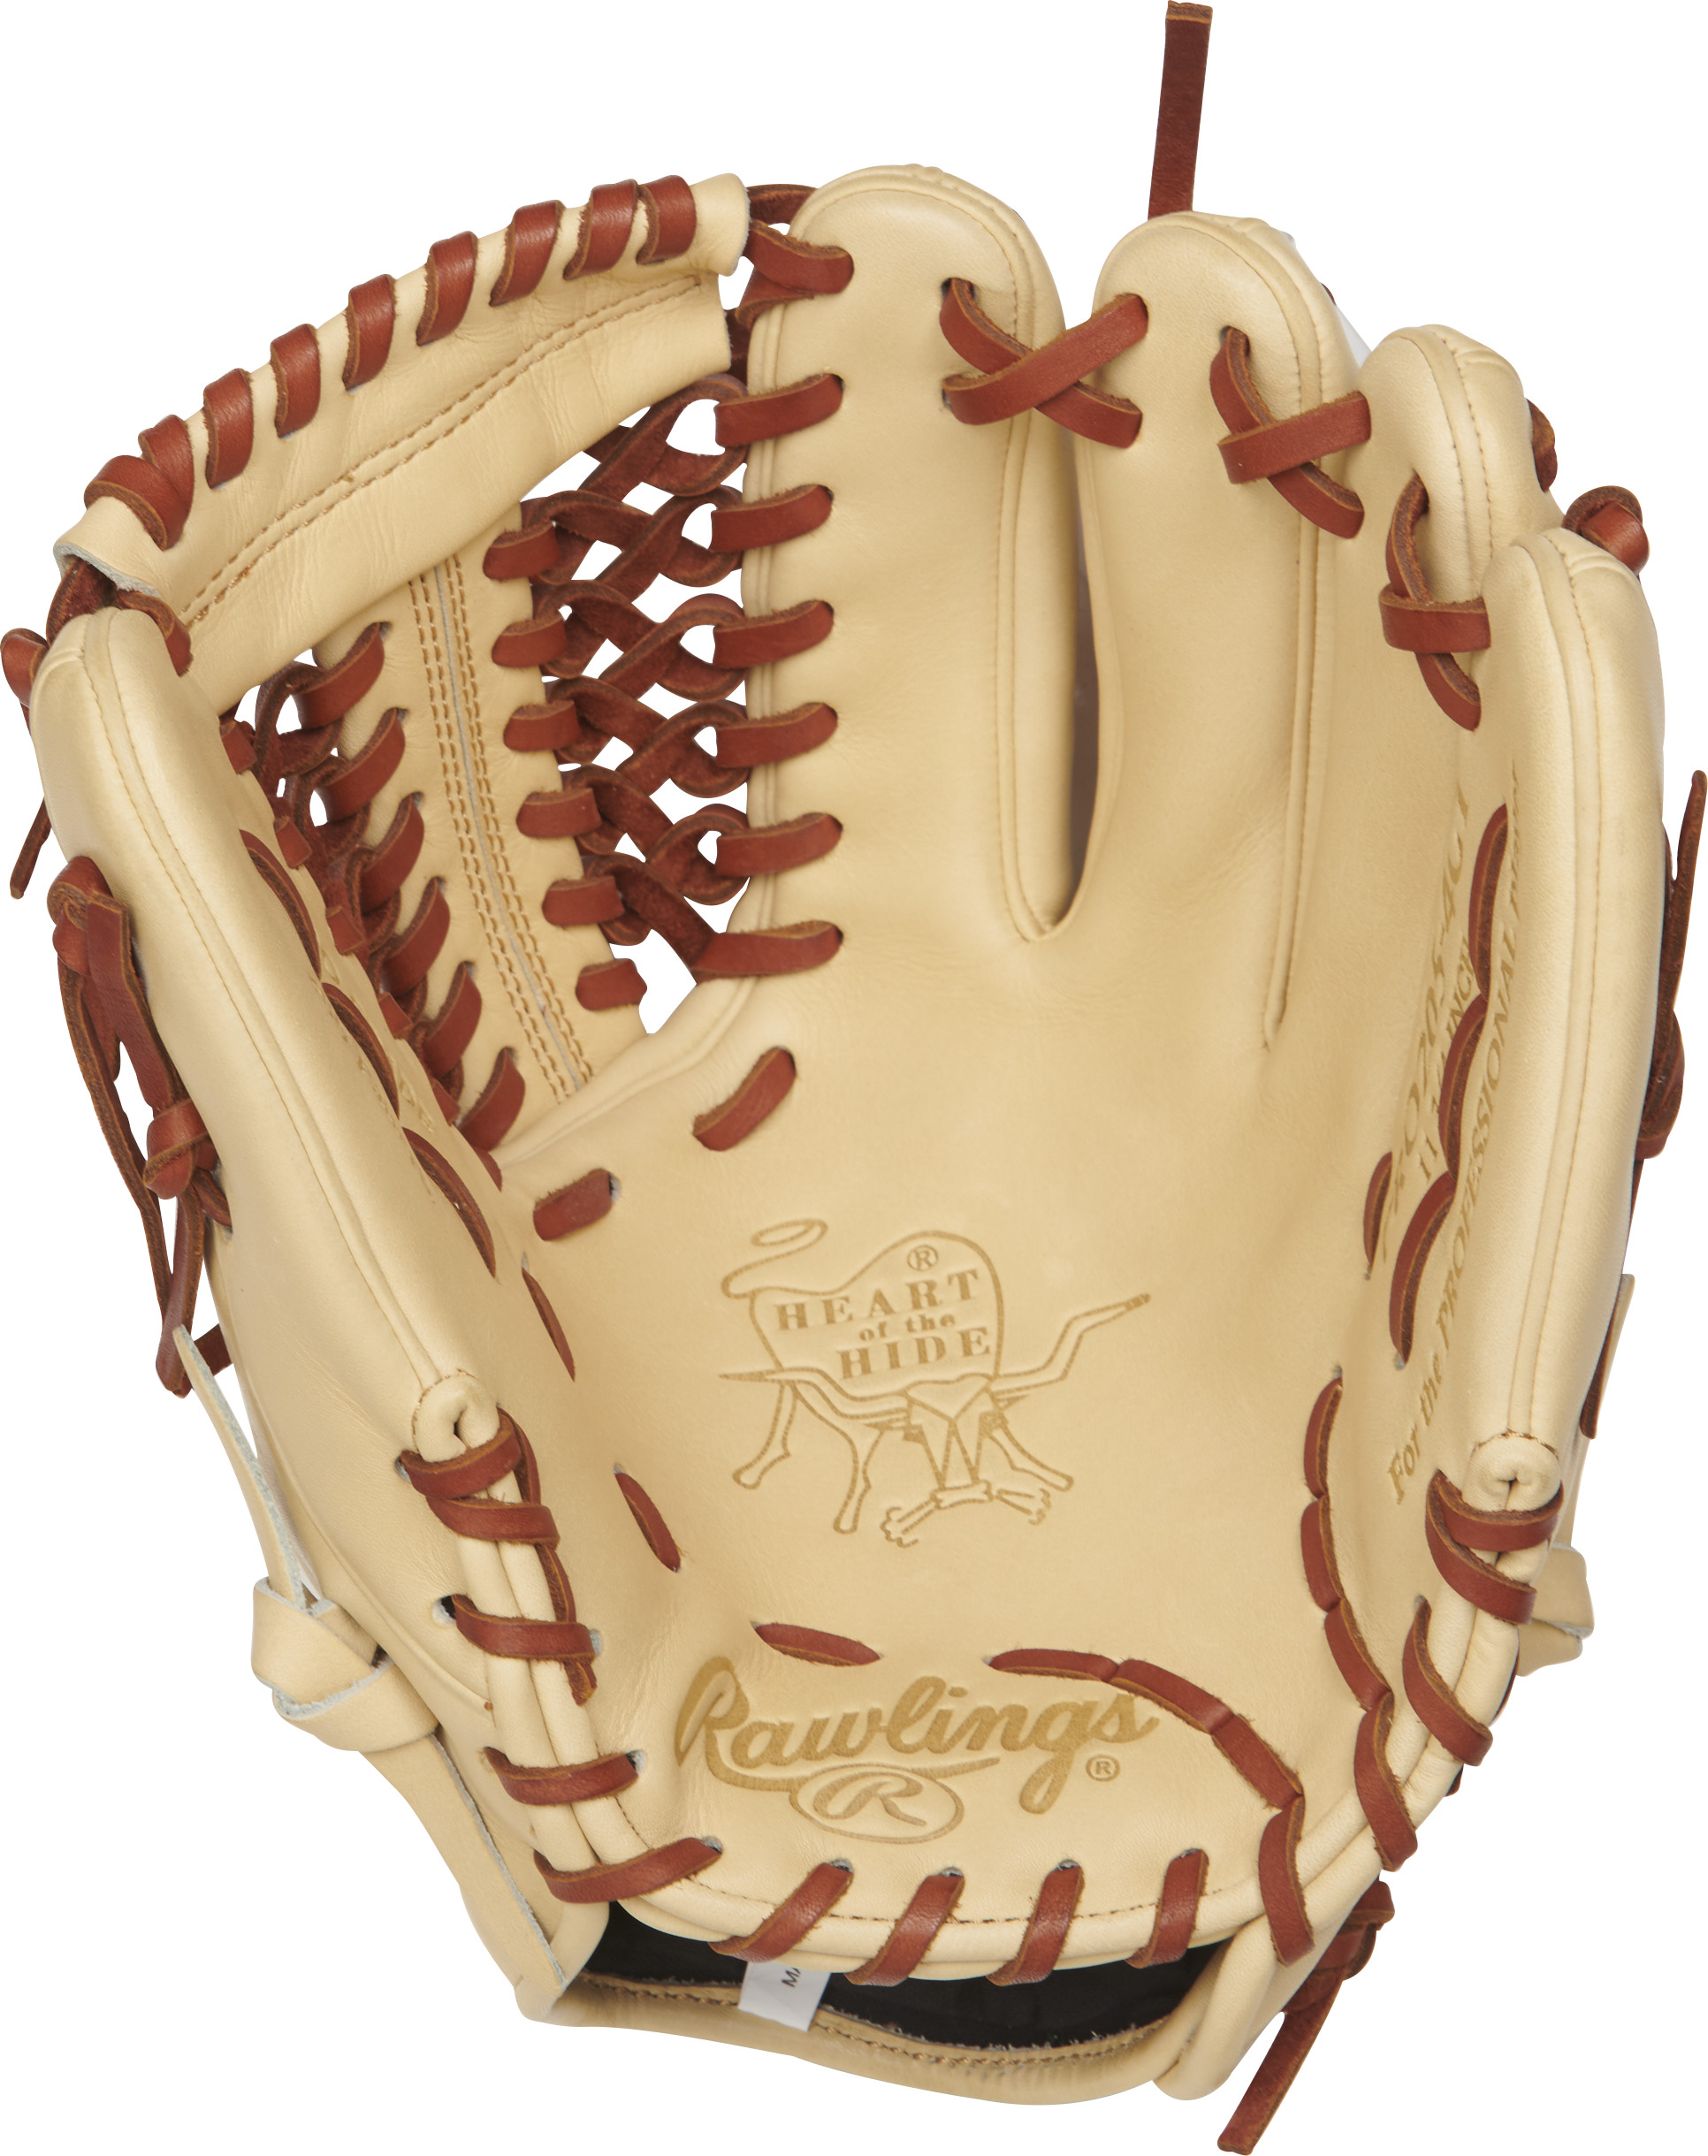 http://www.bestbatdeals.com/images/rawlingsgloves/PRO205-4CT-1.jpg